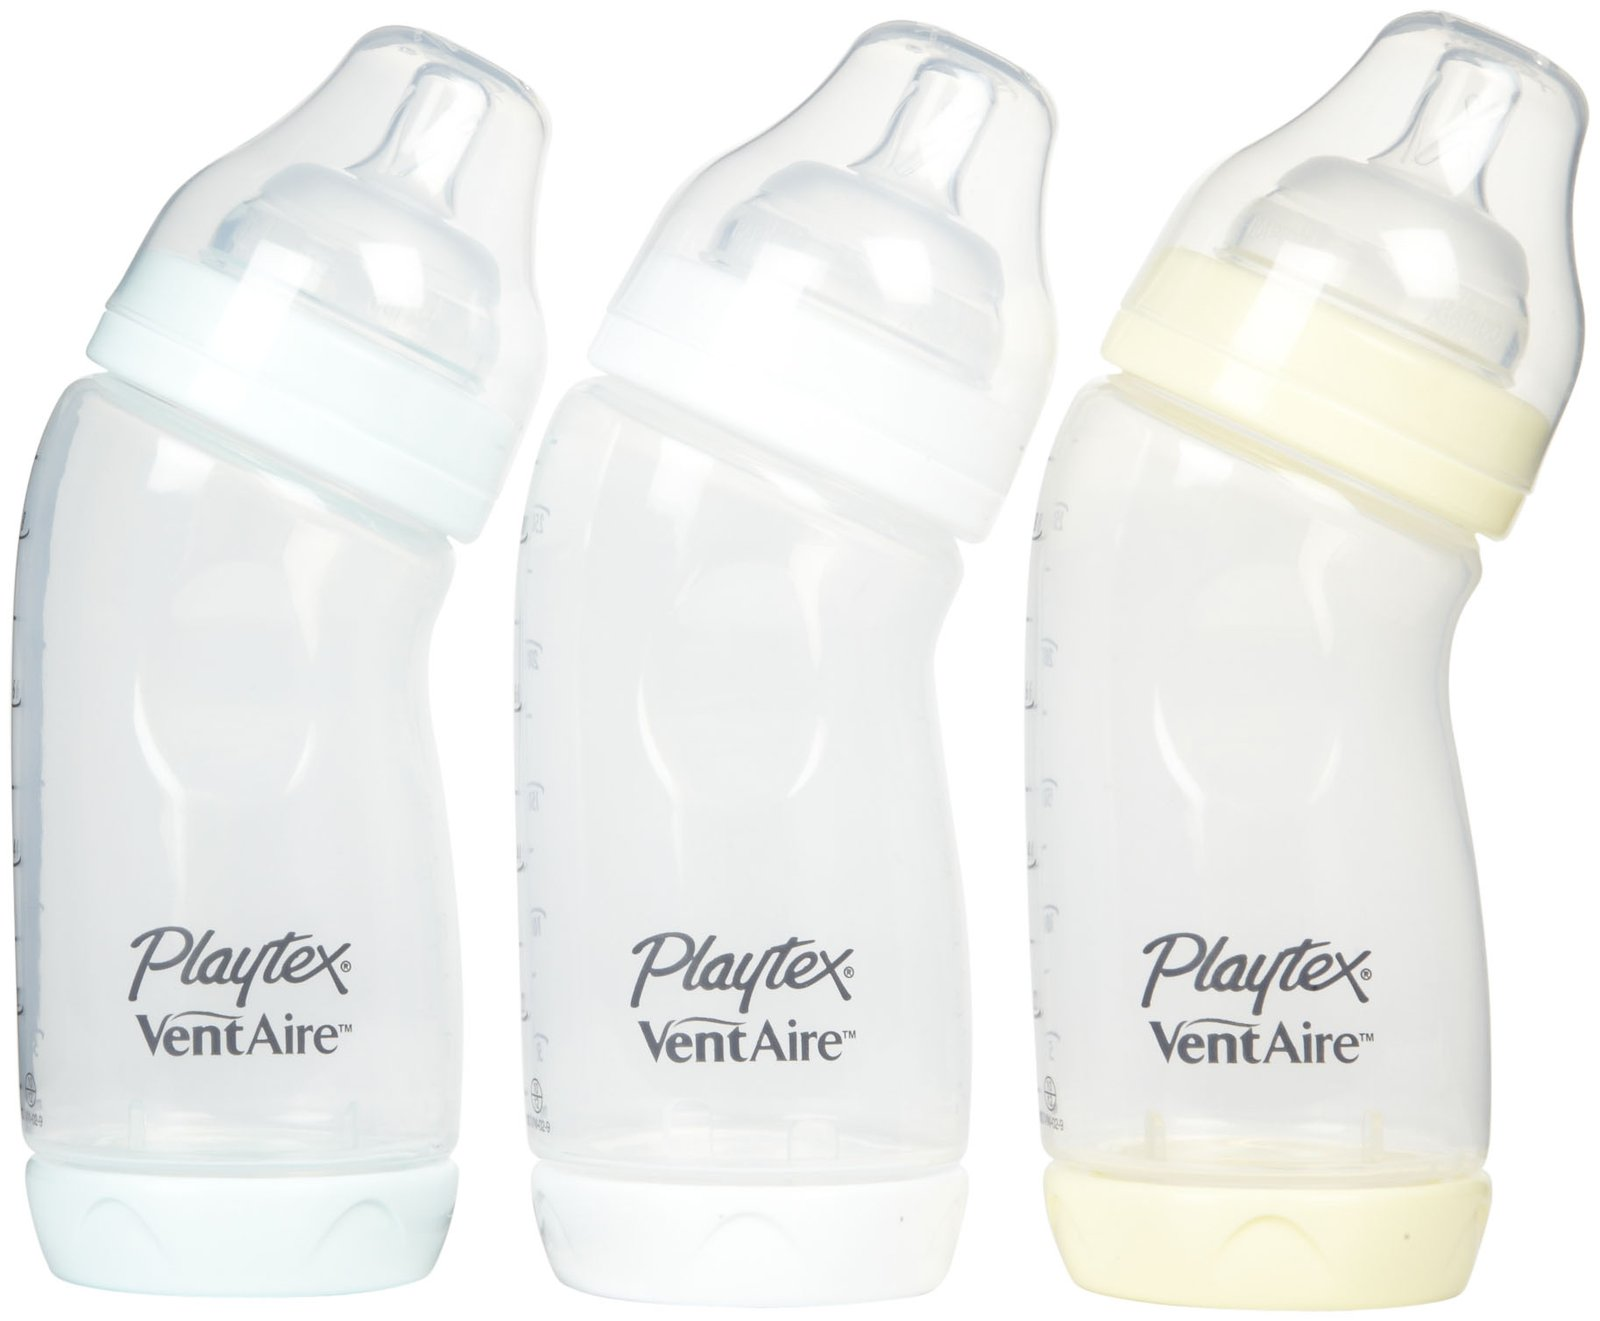 Review of Playtex VentAire Advanced Wide Baby Bottles